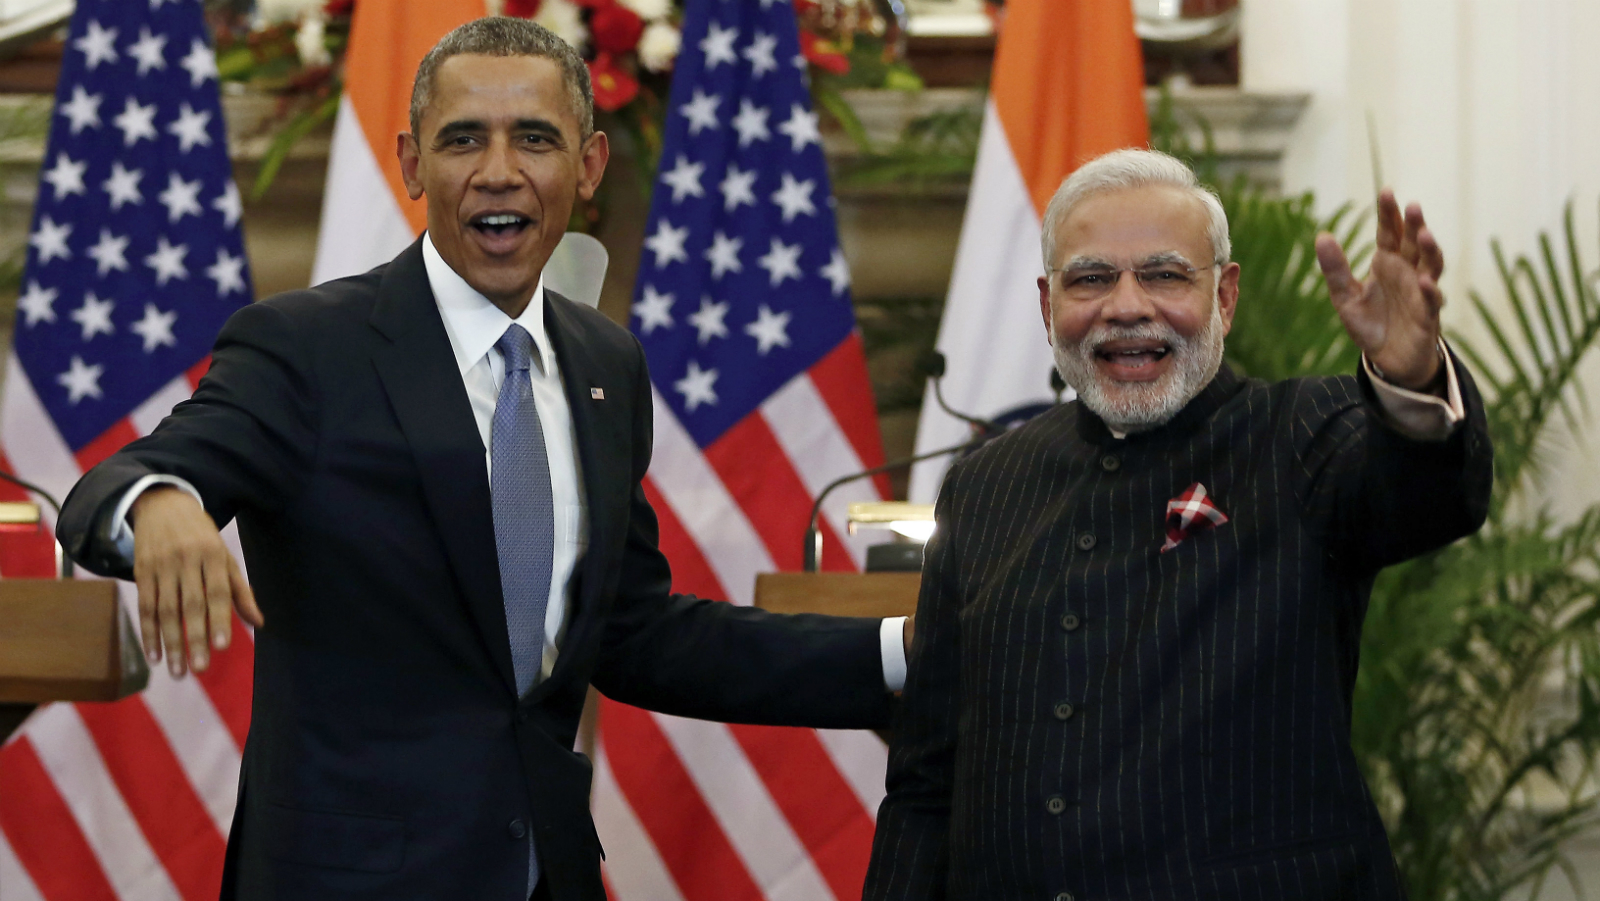 U.S. President Barack Obama stands next to Indian Prime Minister Narendra Modi (R) waving as they leave after giving their opening statement at Hyderabad House in New Delhi January 25, 2015. In a glow of bonhomie, Obama and Modi announced a breakthrough on nuclear trade on Sunday, a step that both sides hope will help establish an enduring strategic partnership.